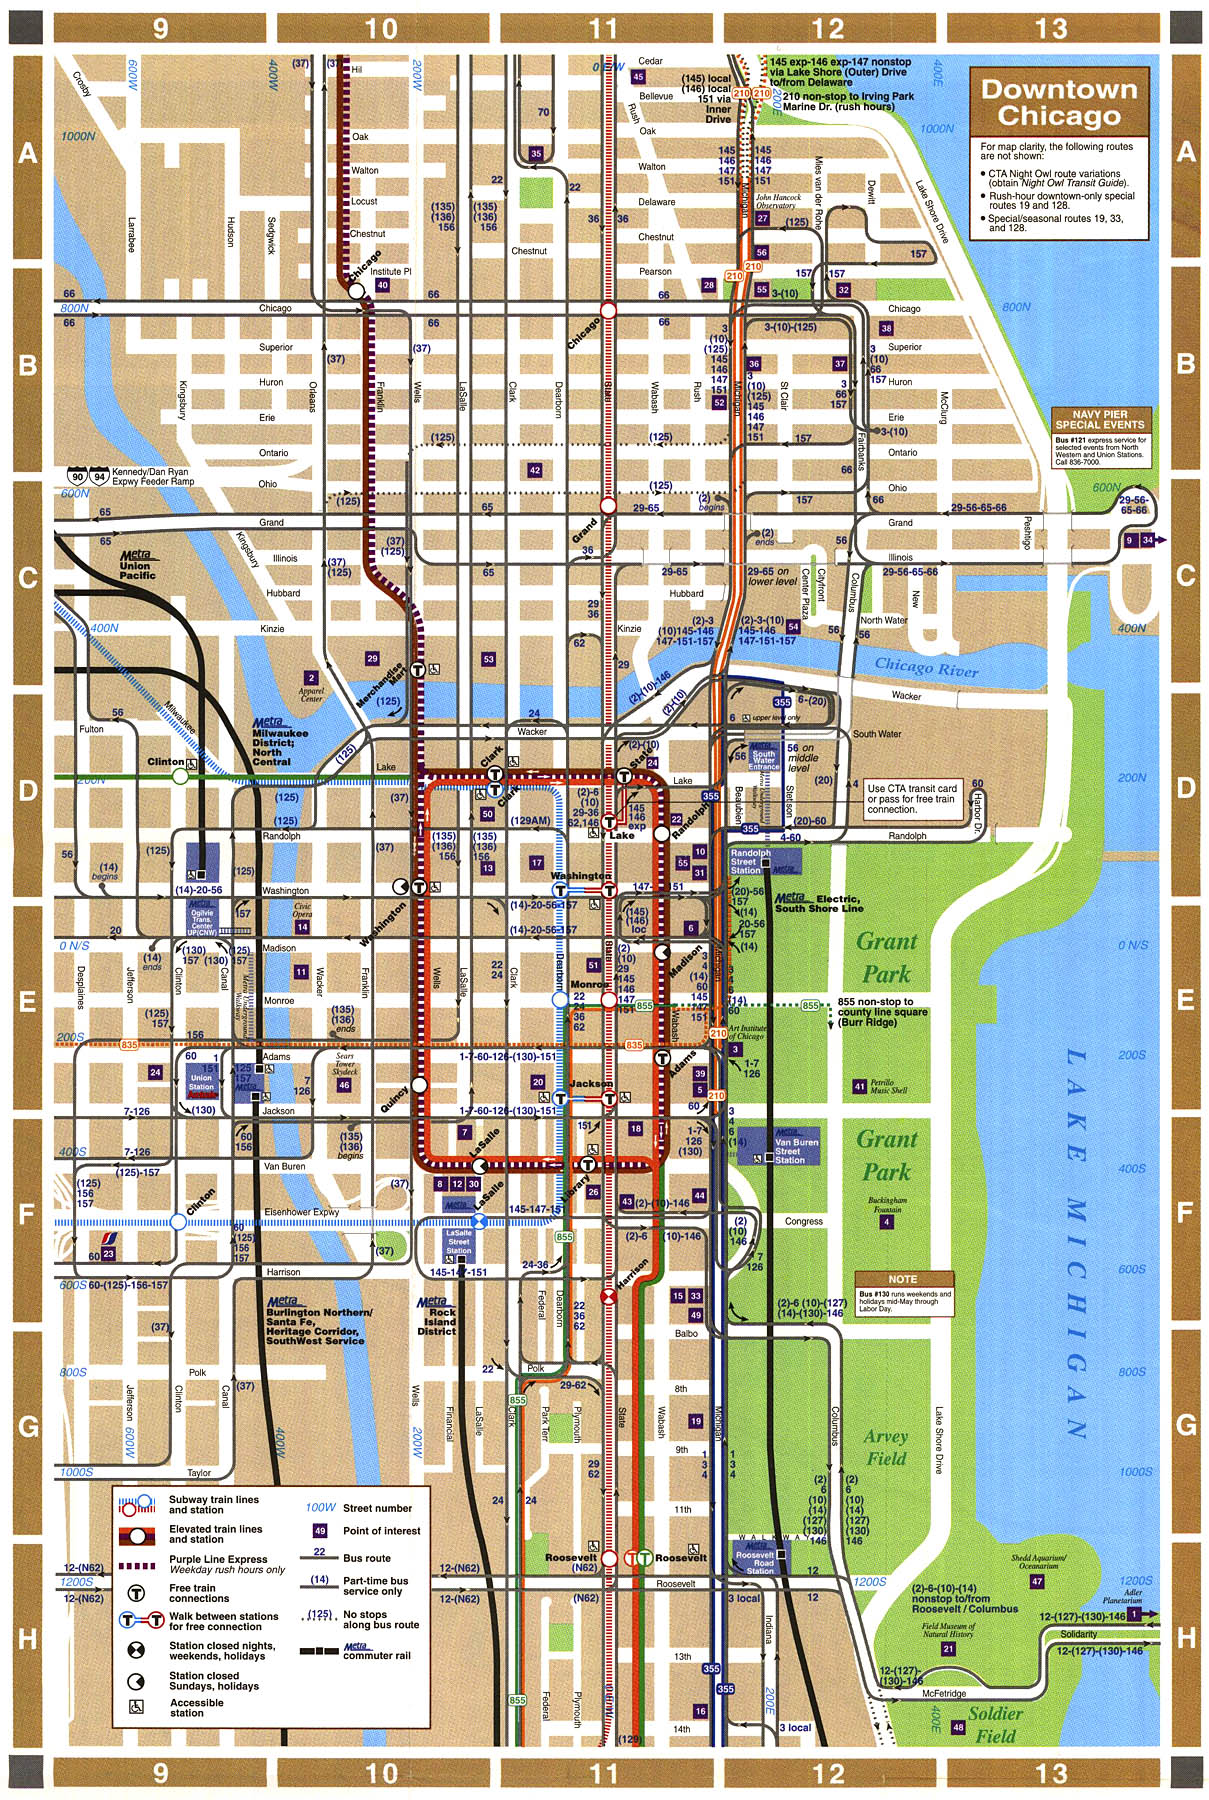 downtown chicago map: